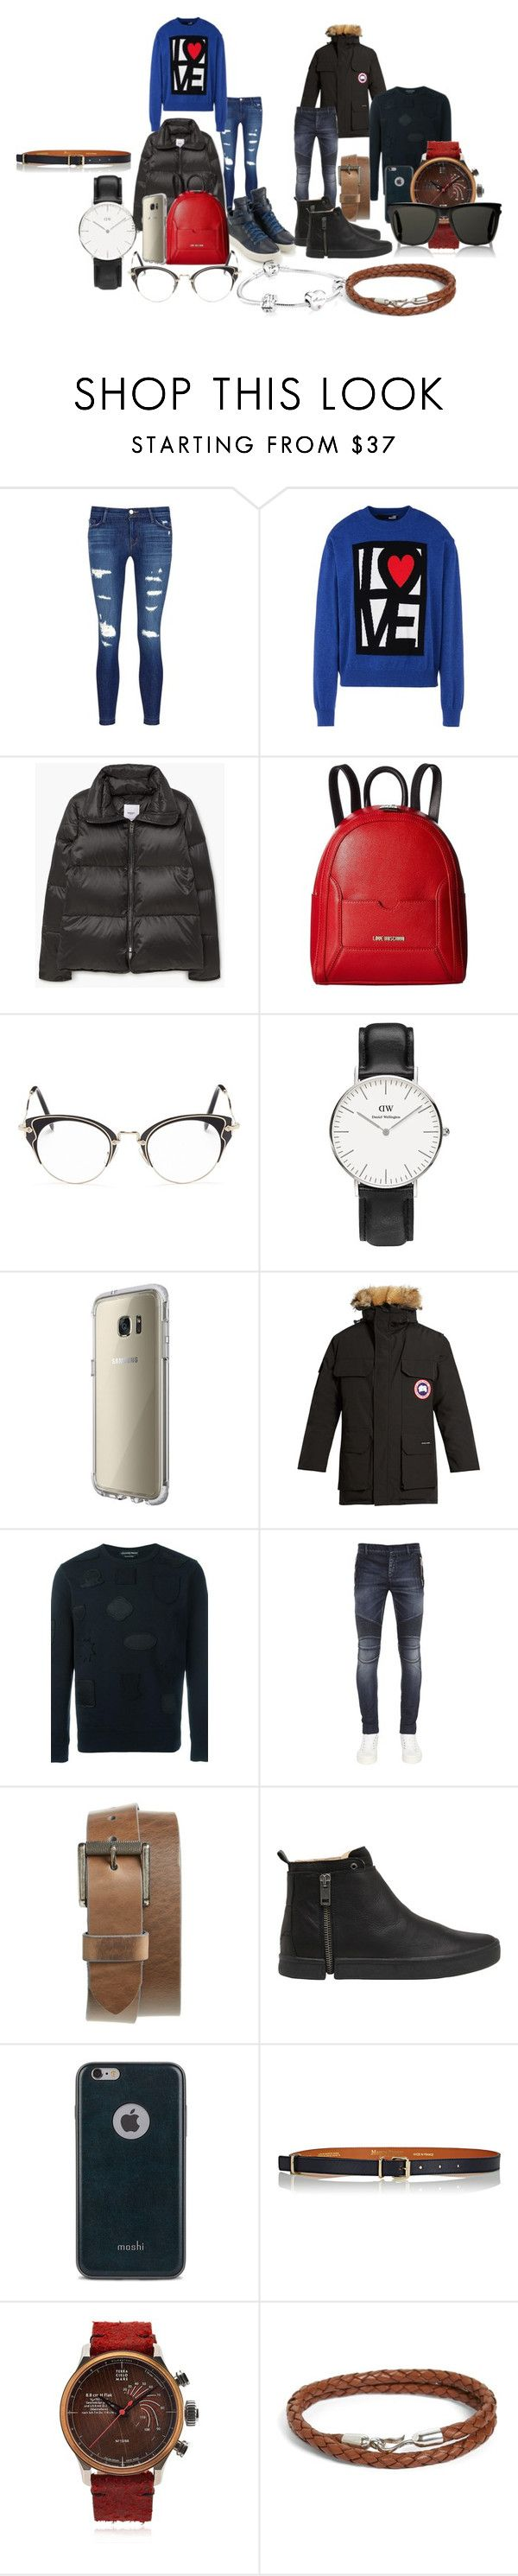 """:*"" by jelaxoxo ❤ liked on Polyvore featuring J Brand, Love Moschino, MANGO, Miu Miu, Daniel Wellington, Canada Goose, Alexander McQueen, Balmain, 1901 and Diesel"